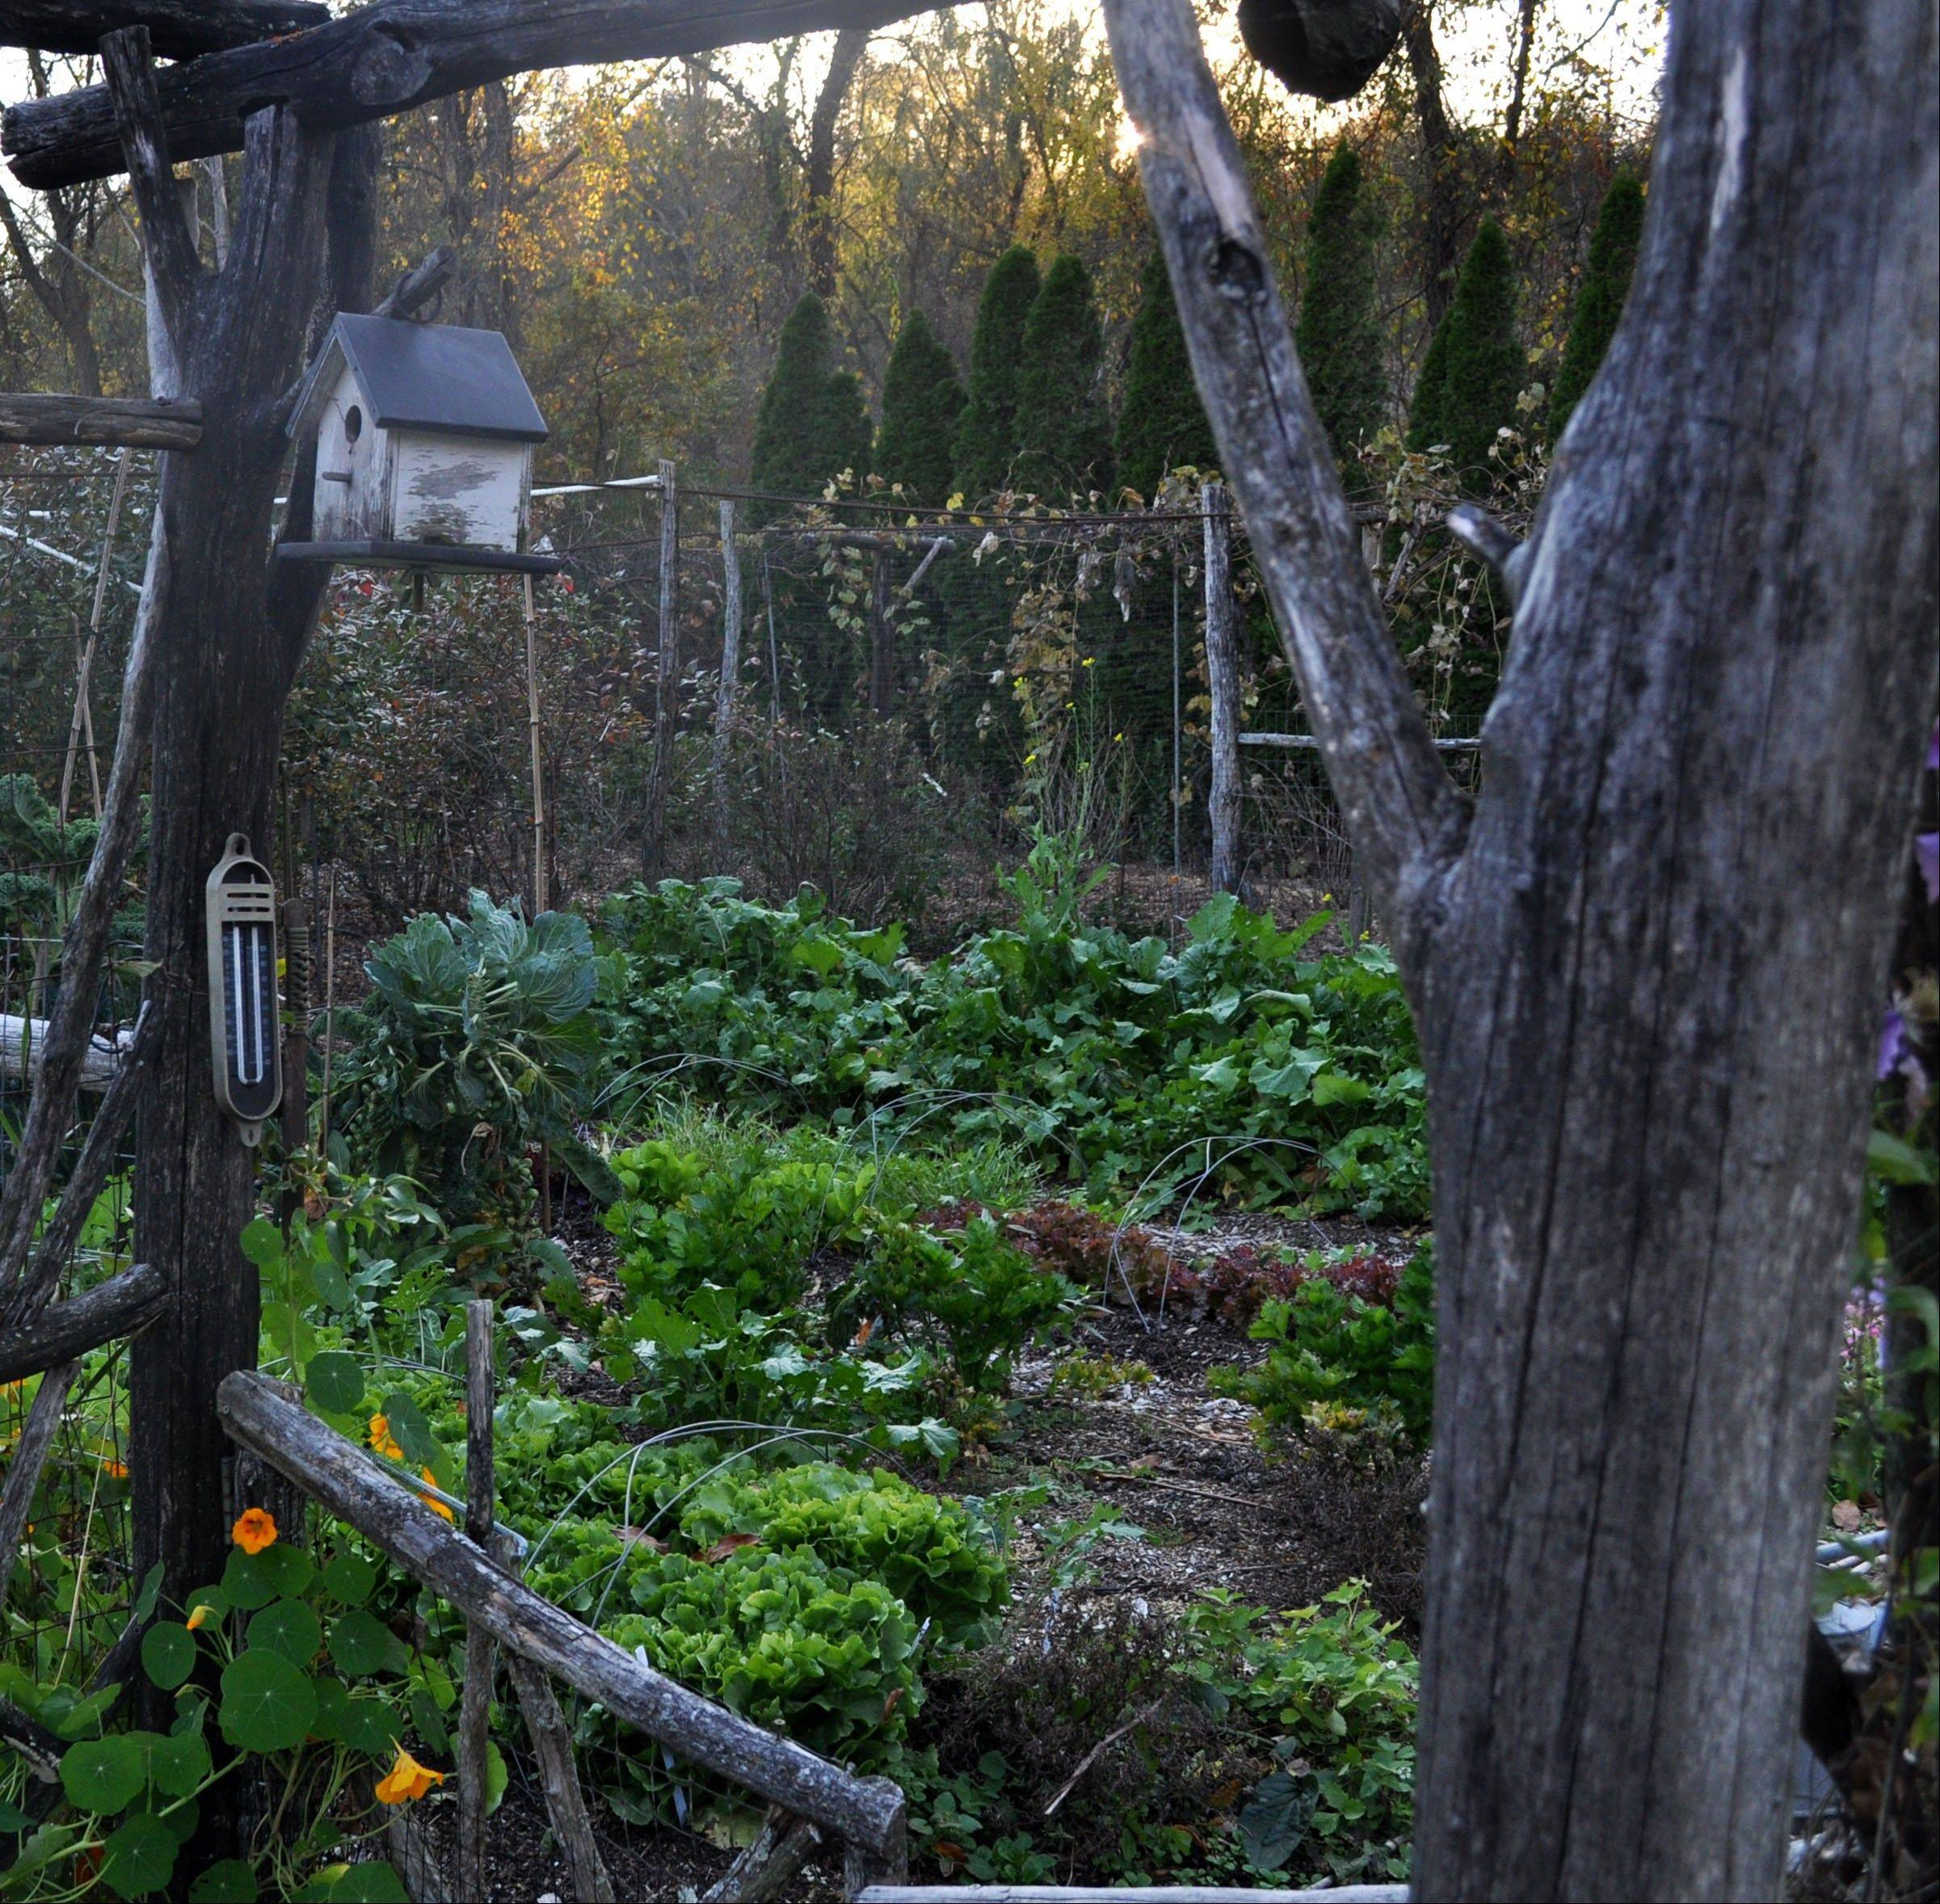 A vegetable garden for autumn can include endive, turnips, lettuce and Brussels sprouts. Just because summer�s gone and there�s frost in the air doesn�t mean your garden has to be a scene of tawny colors and limp leaves.